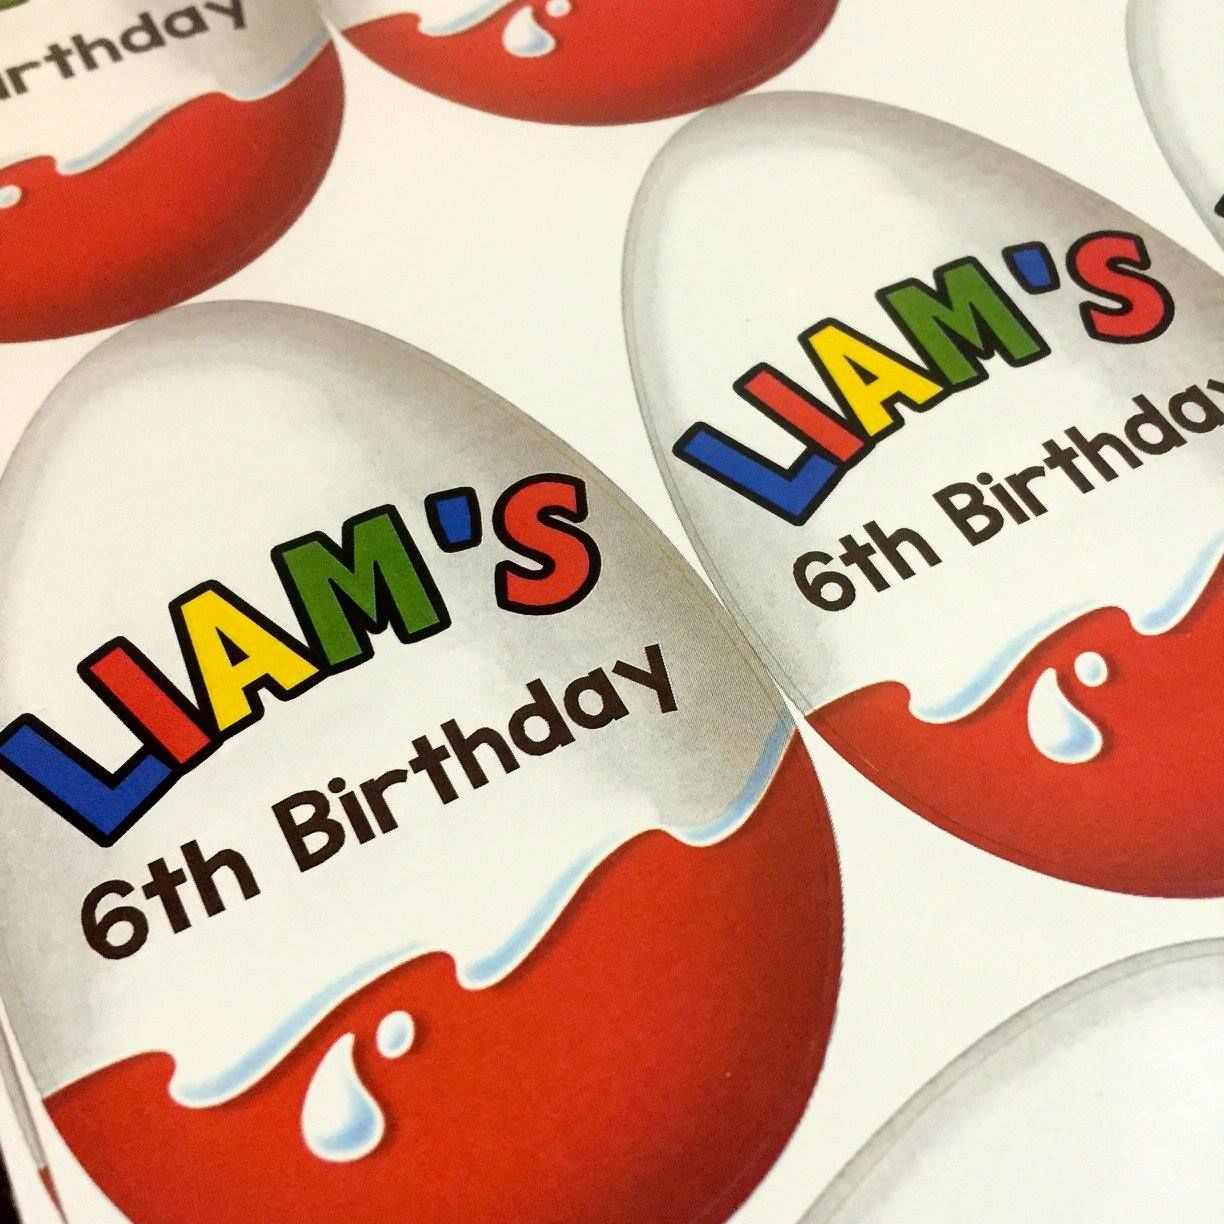 Kinder Surprise Chocolate Birthday Stickers Personalised Ideas Party Birthday Stickers 2nd Birthday Parties Kinder Surprise